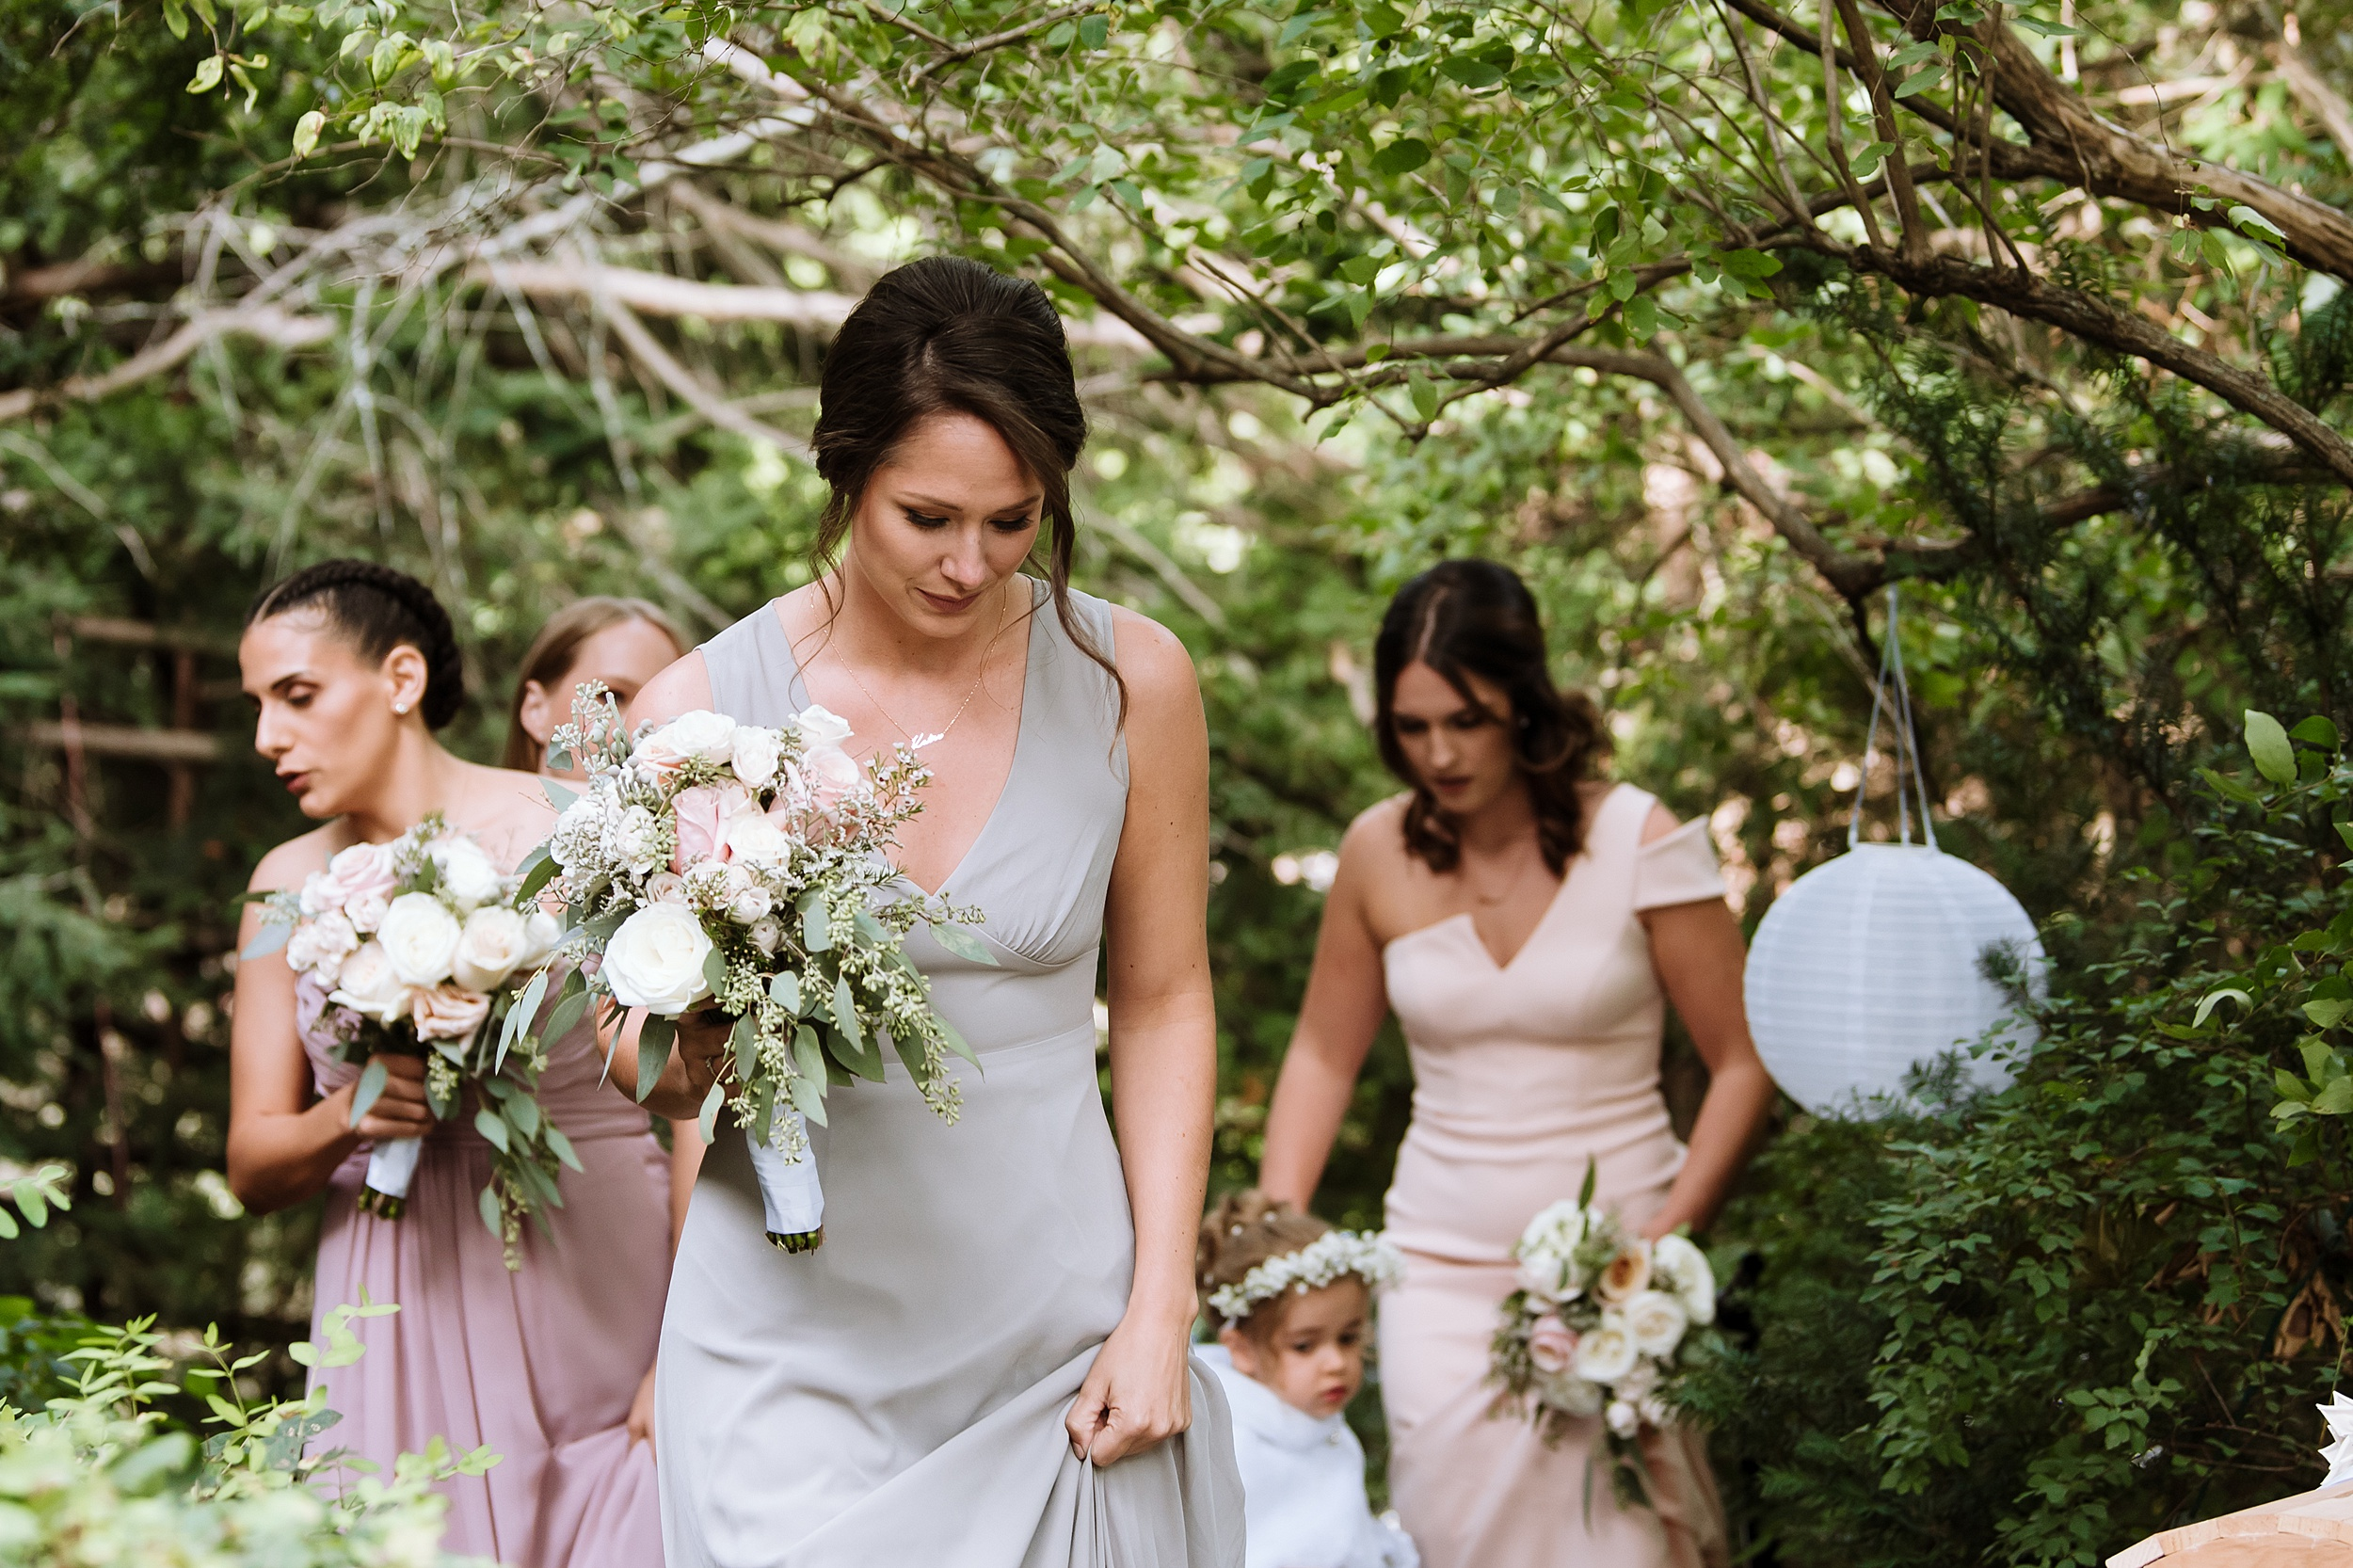 Rustic_Backyard_Wedding_Toronto_Photographer088.jpg